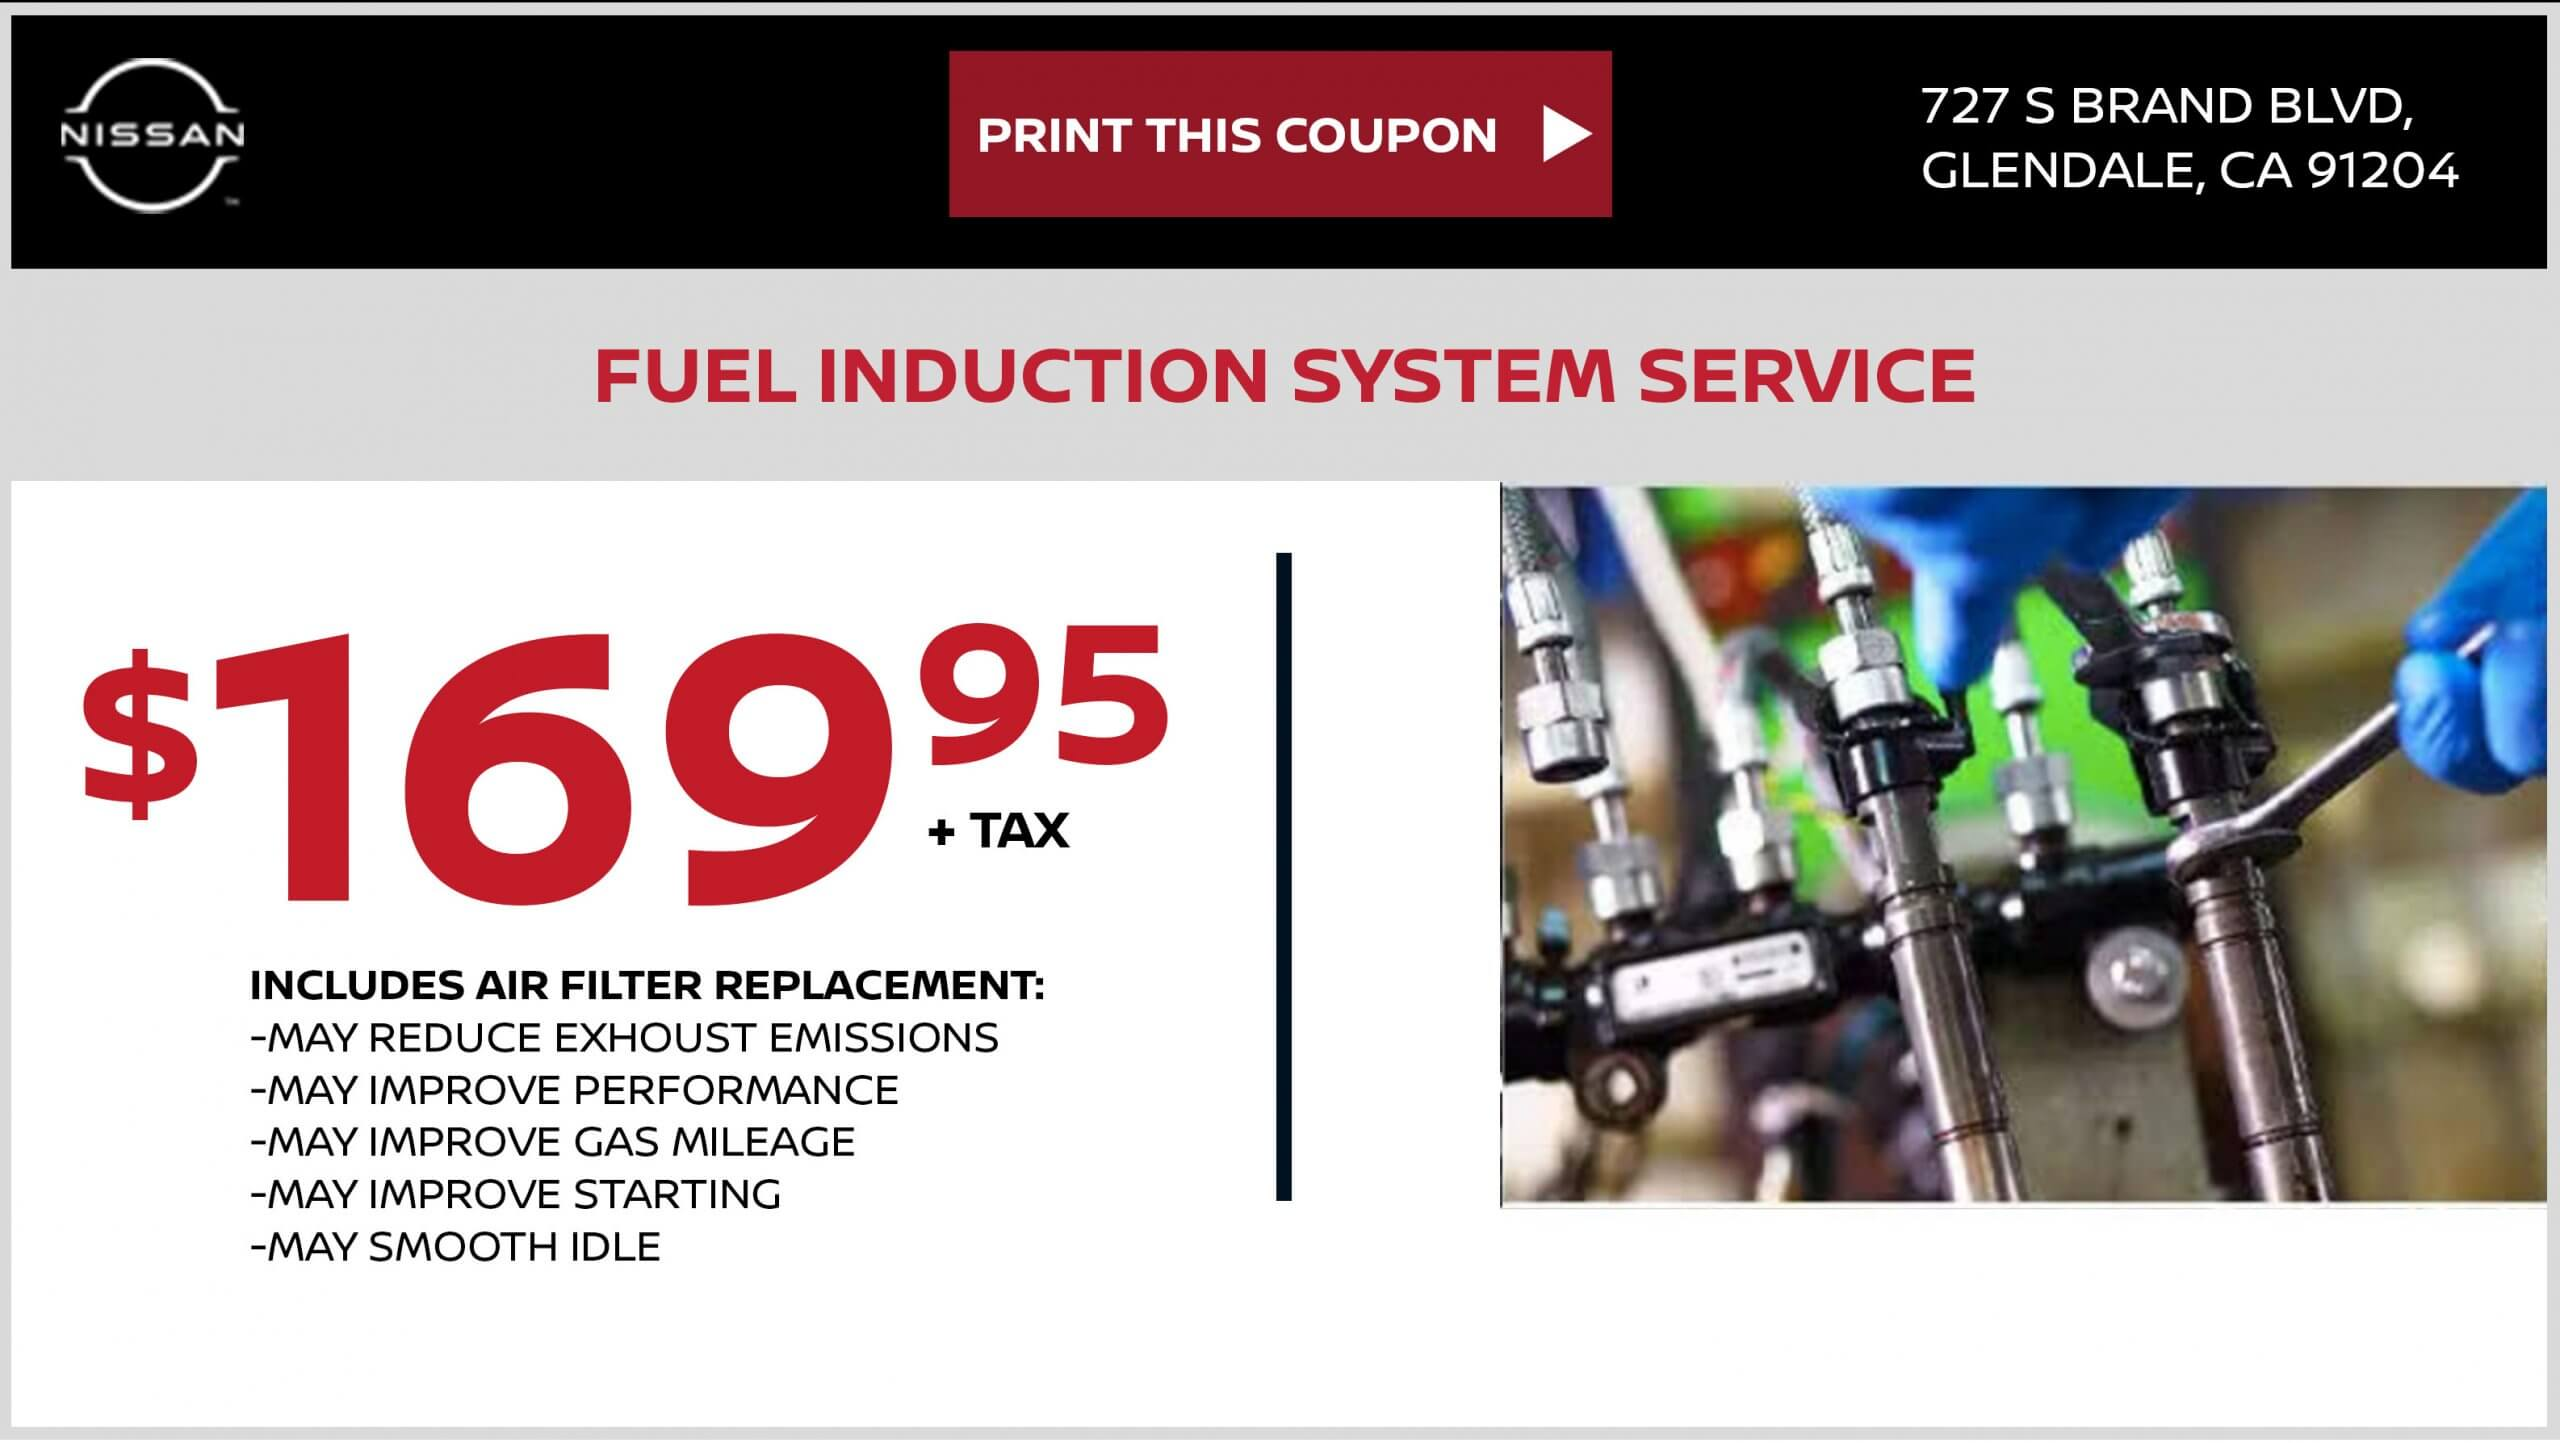 FUEL INDUCTION SYSTEM SERVICE